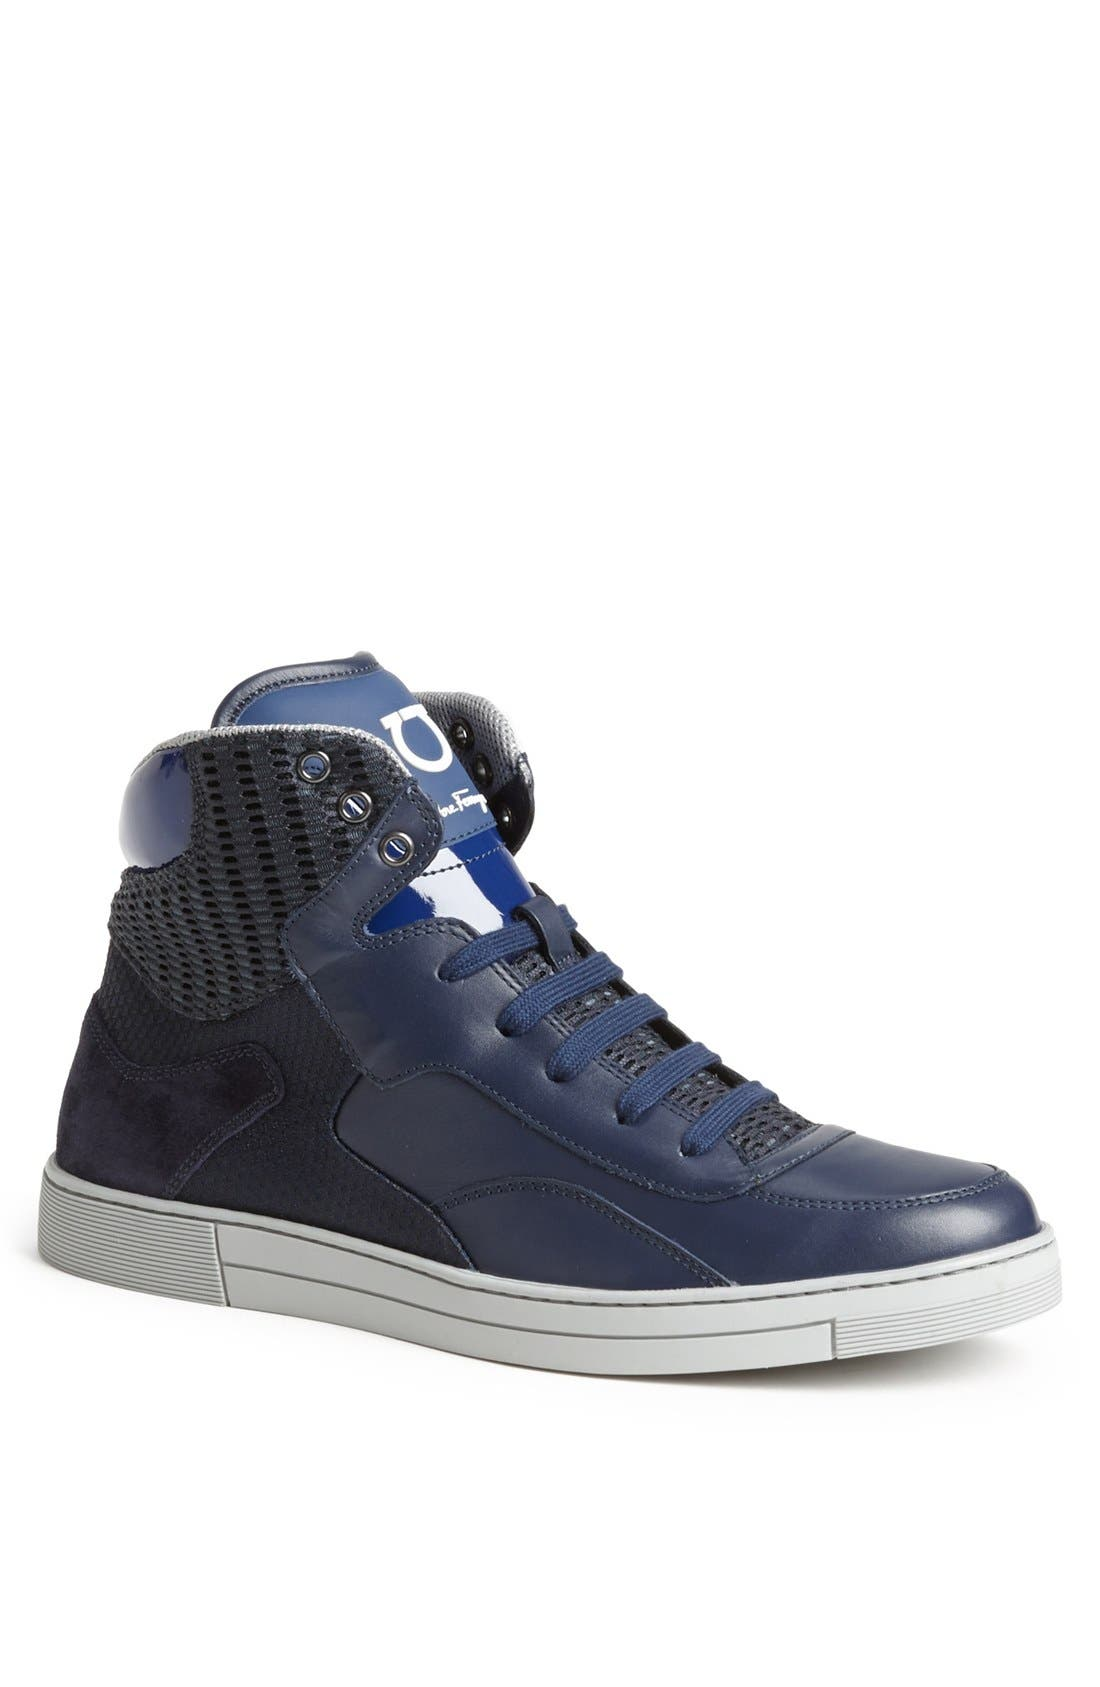 Alternate Image 1 Selected - Salvatore Ferragamo 'Robert' High Top Sneaker